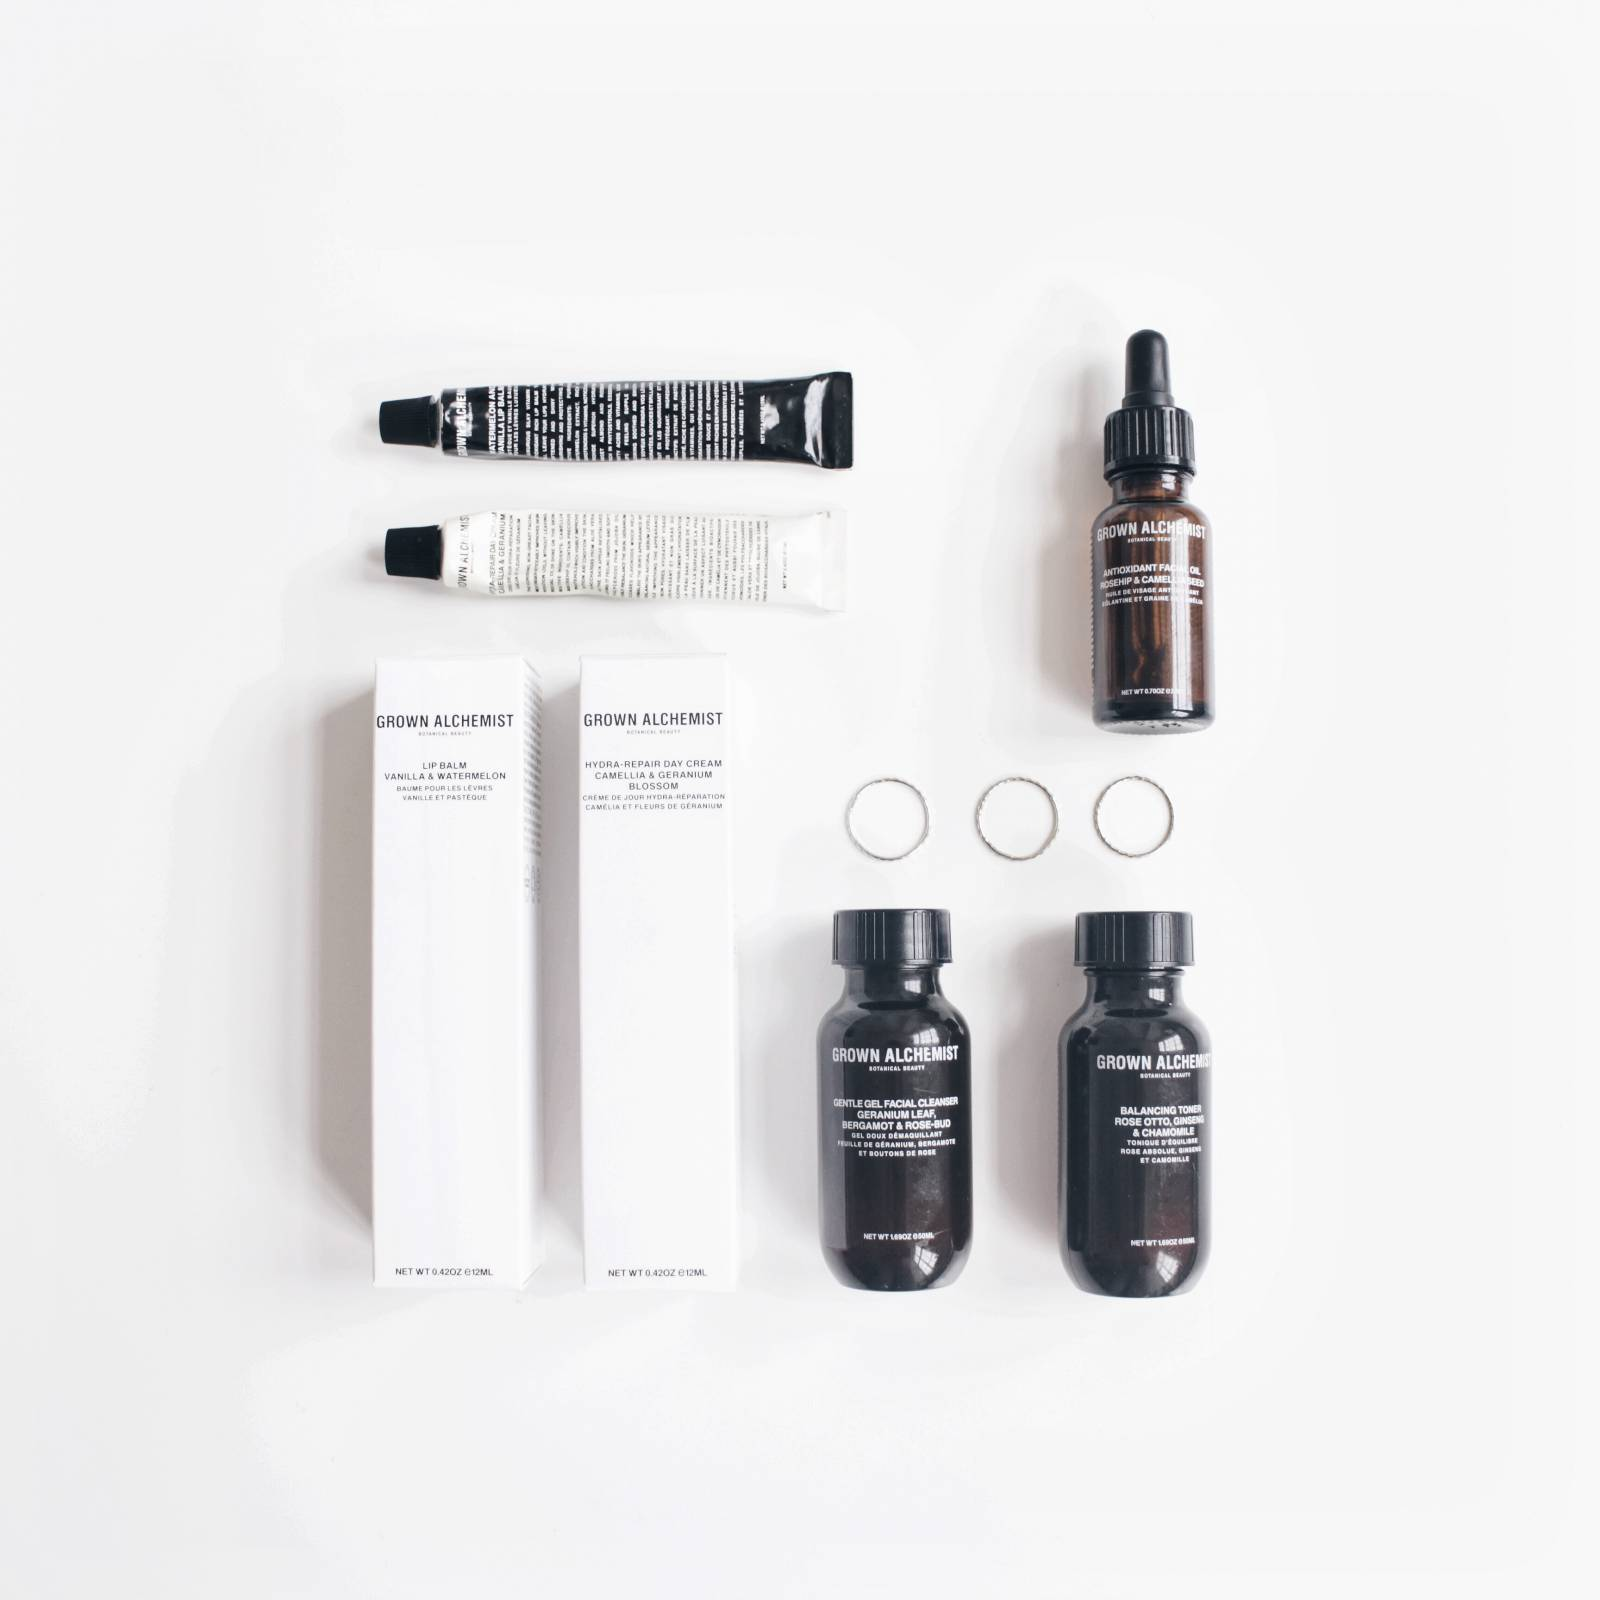 grown alchemist facial kit review ohmyskin grown alchemist facial kit review